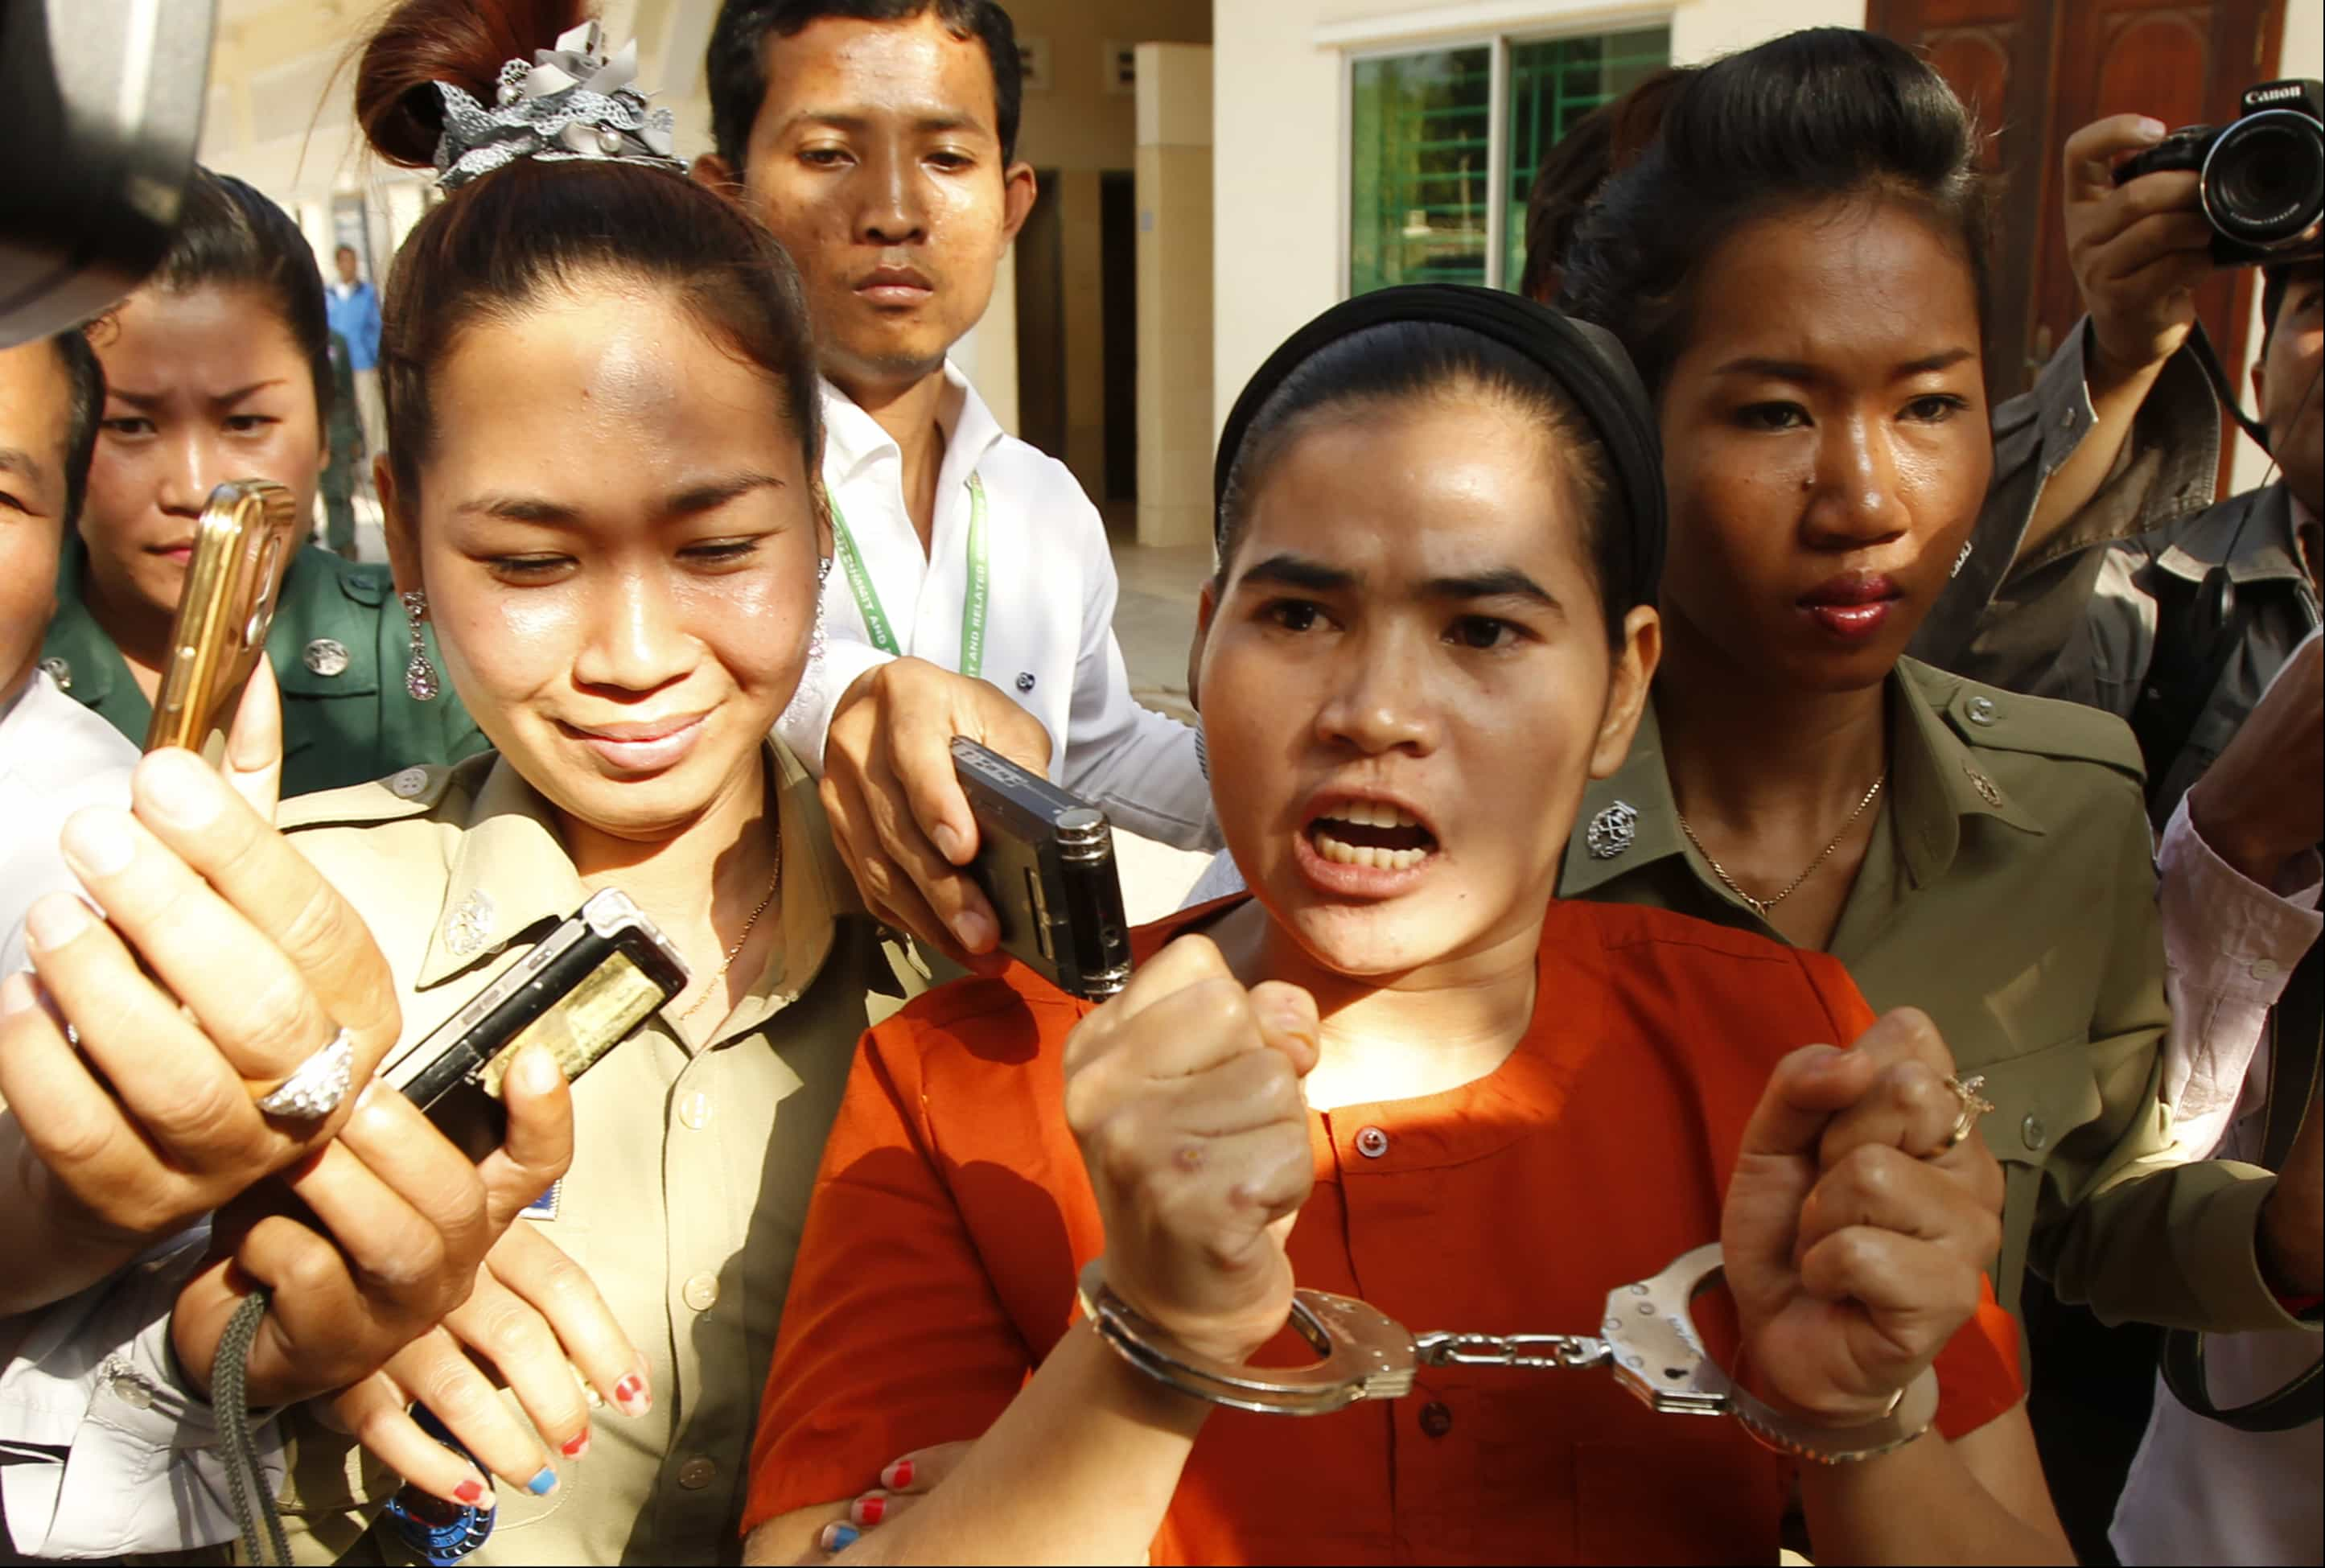 Detained Cambodian land activist, Tep Vanny, center, from the Boeung Kak lake community is escorted by court security during a hearing at Appeals Court in Phnom Penh, Cambodia, Thursday, Jan. 22, 2015., ASSOCIATED PRESS